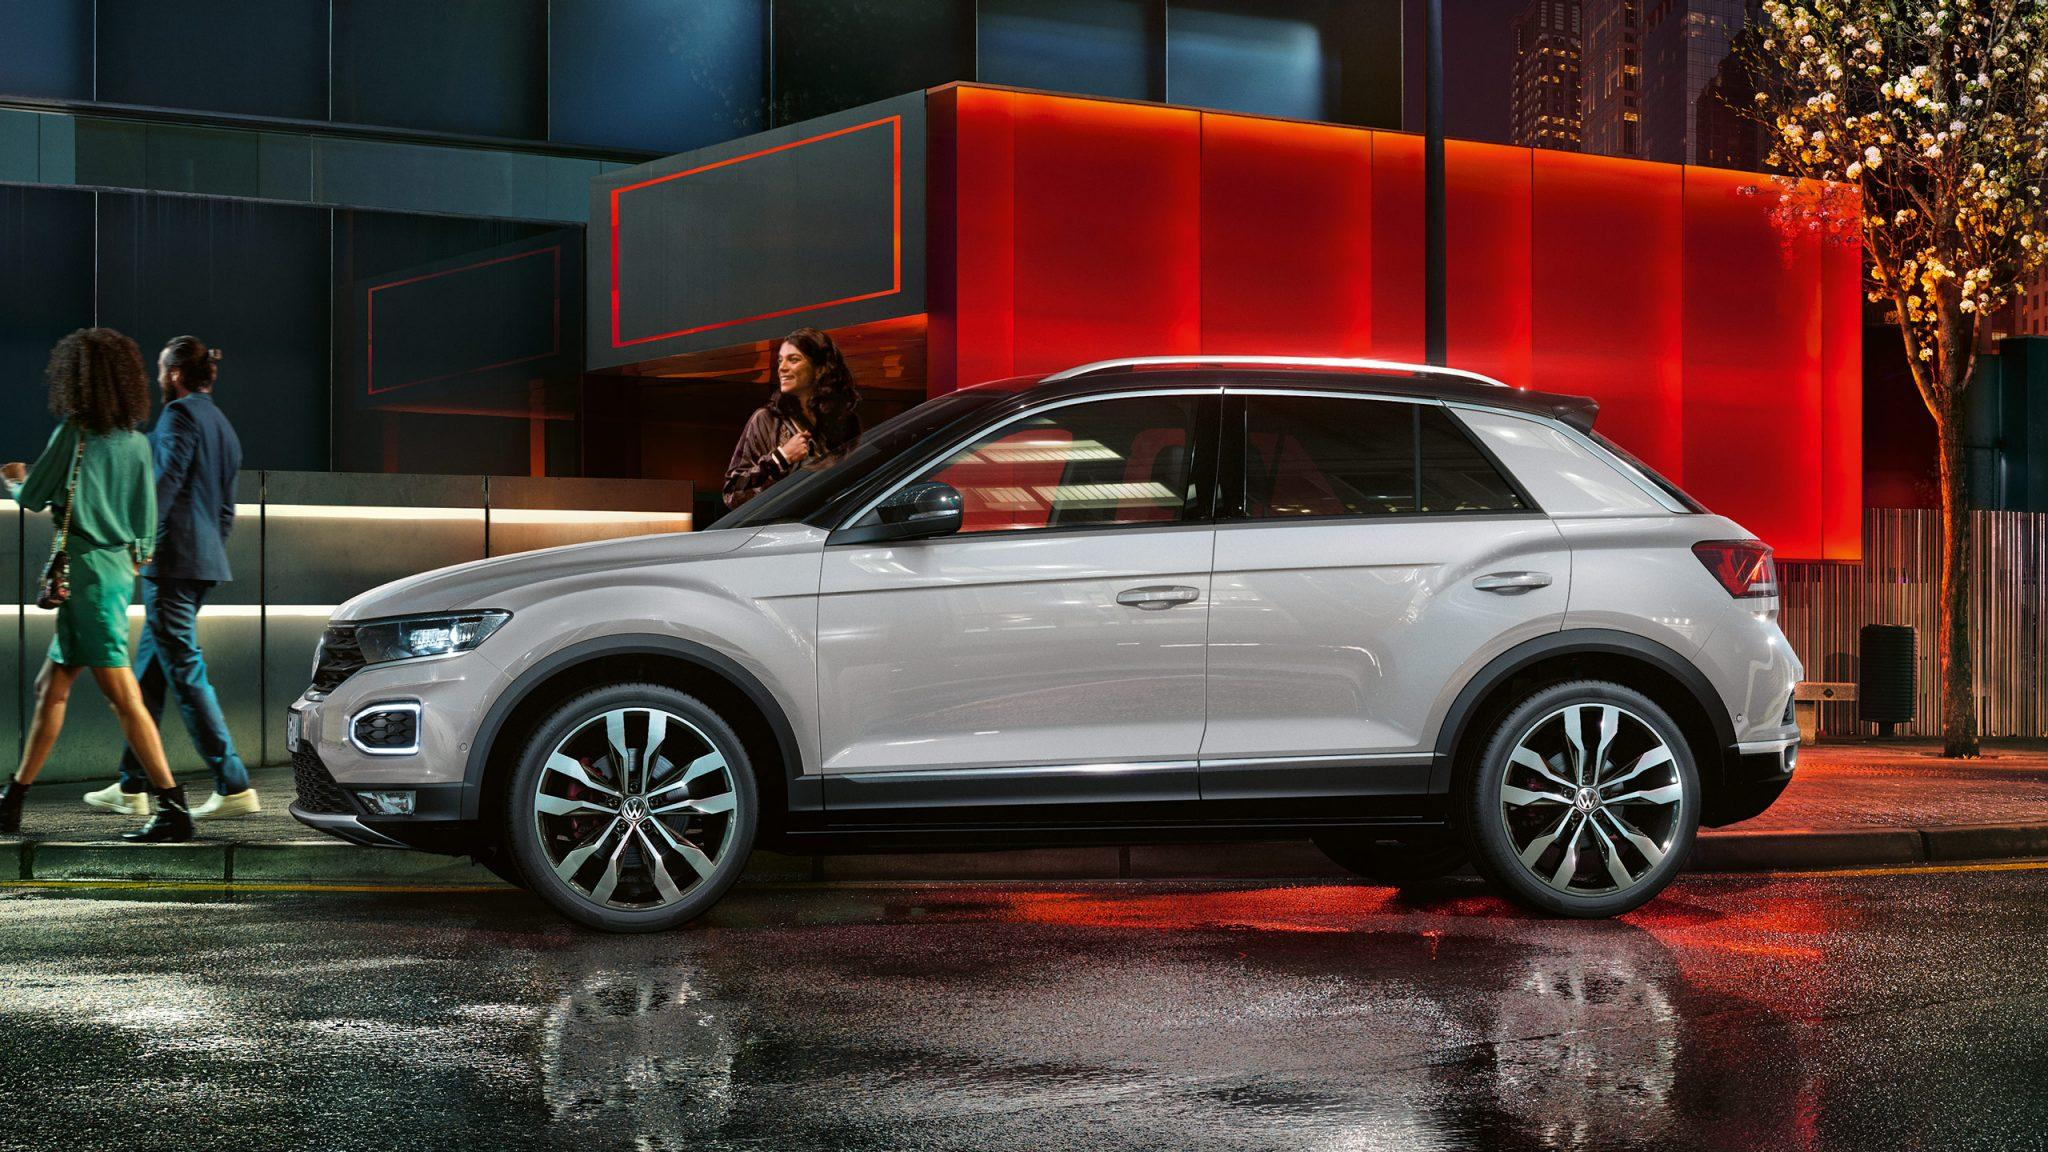 2018 Volkswagen T-Roc side view white color 4k hd wallpaper - Latest ...